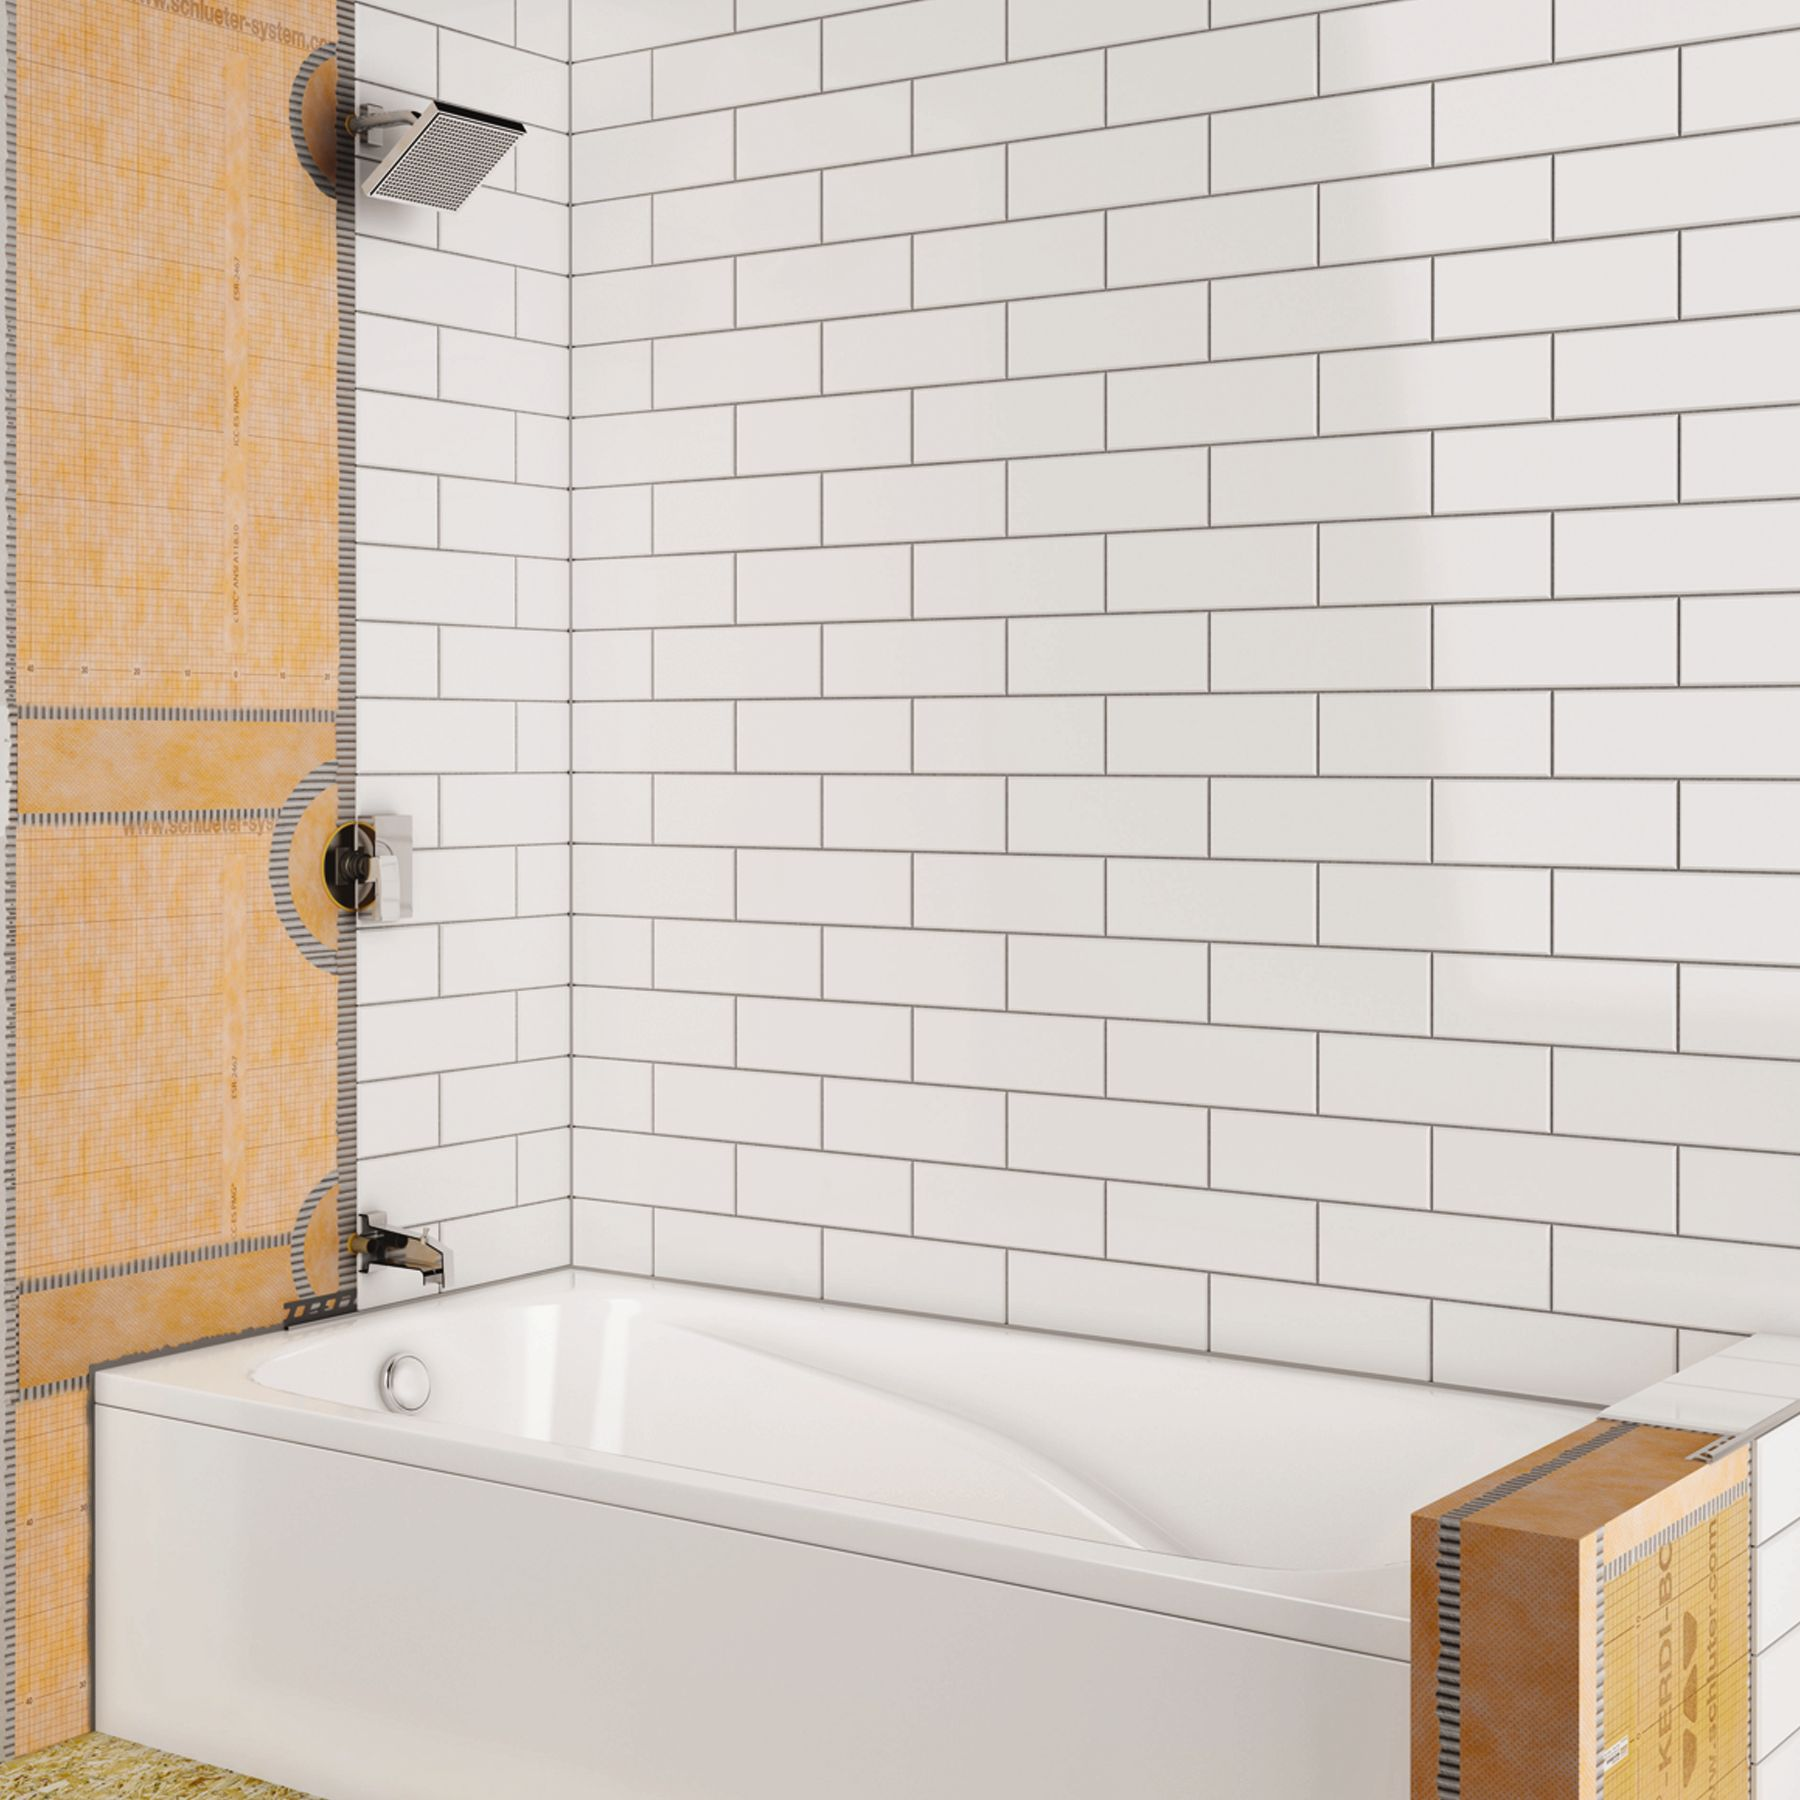 Baignoire En Céramique Shower With Bathtub Schluter